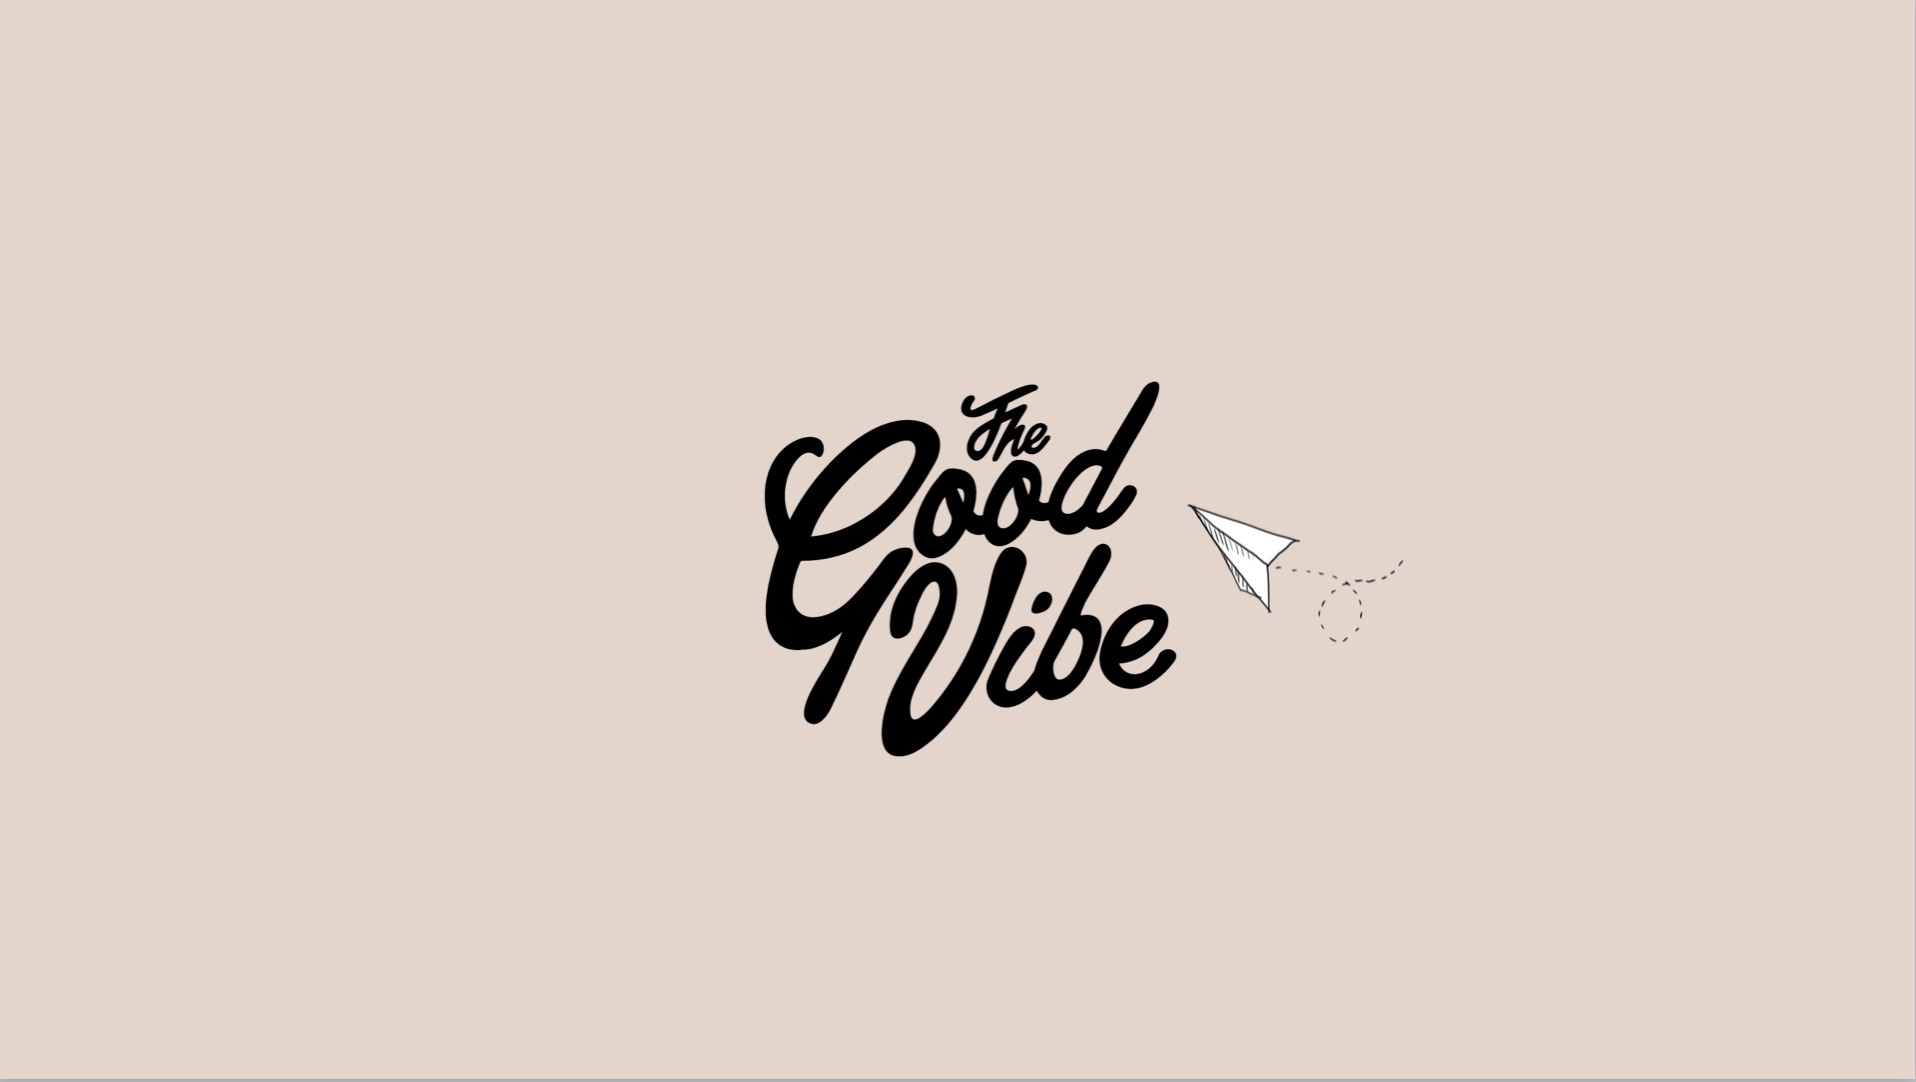 Good Vibes Laptop Wallpaper Laptop Wallpaper Desktop Wallpaper Macbook Macbook Air Wallpaper